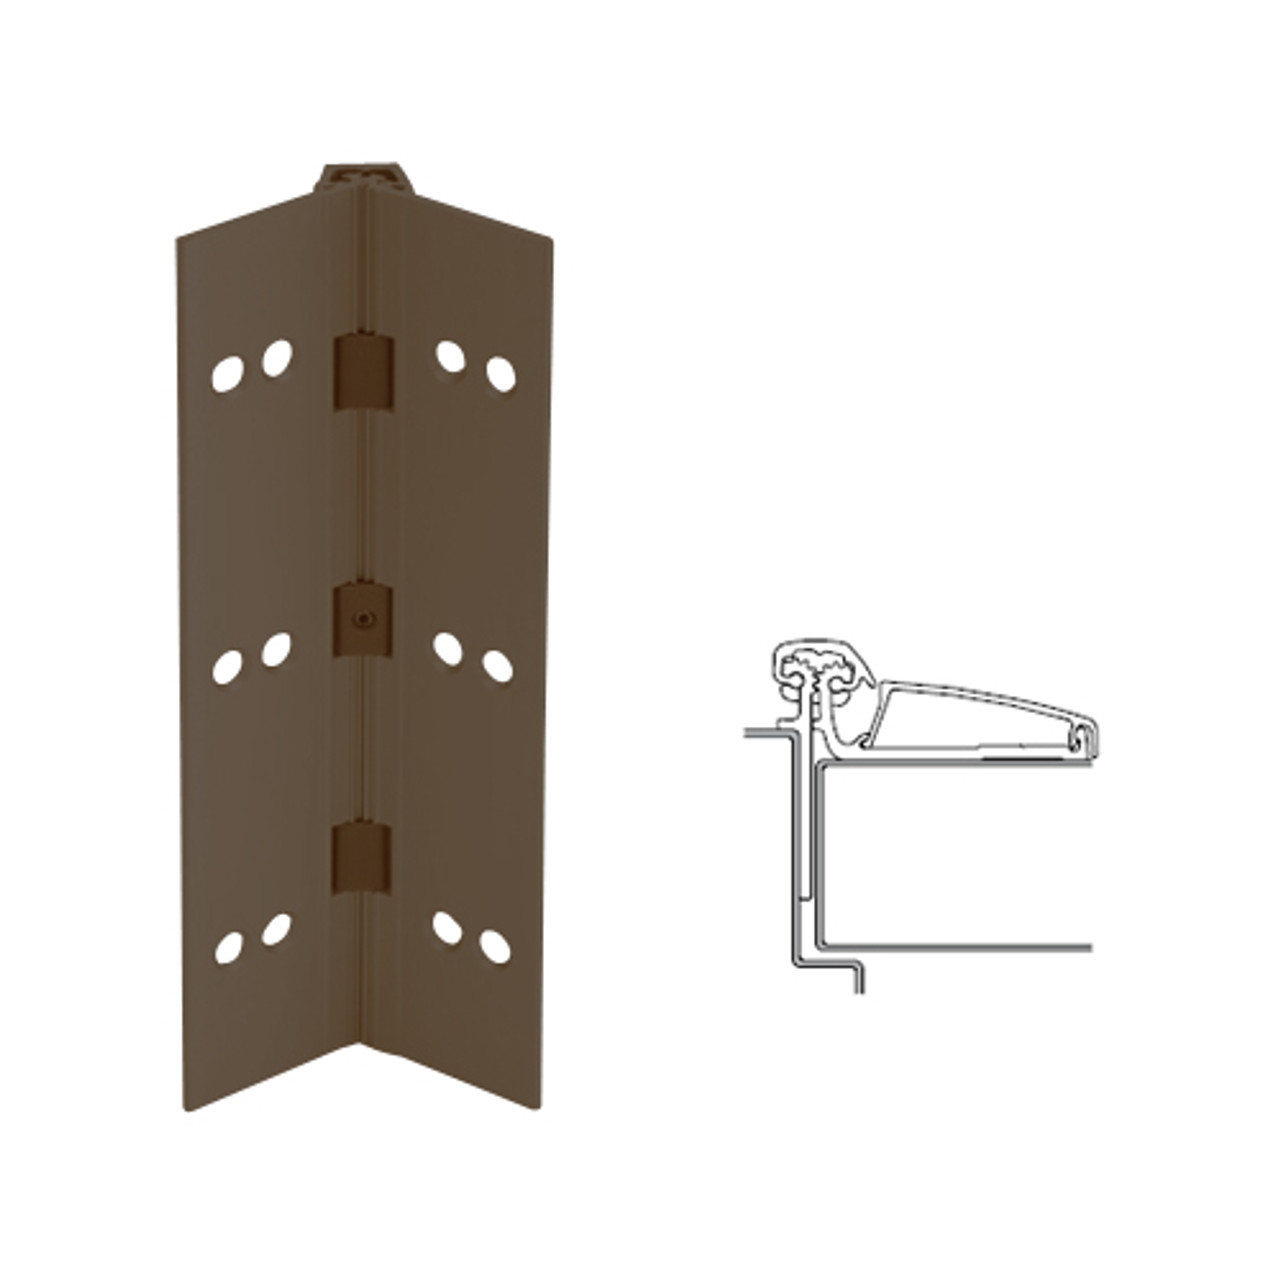 045XY-313AN-95-SECWDHM IVES Adjustable Half Surface Continuous Geared Hinges with Security Screws - Hex Pin Drive in Dark Bronze Anodized